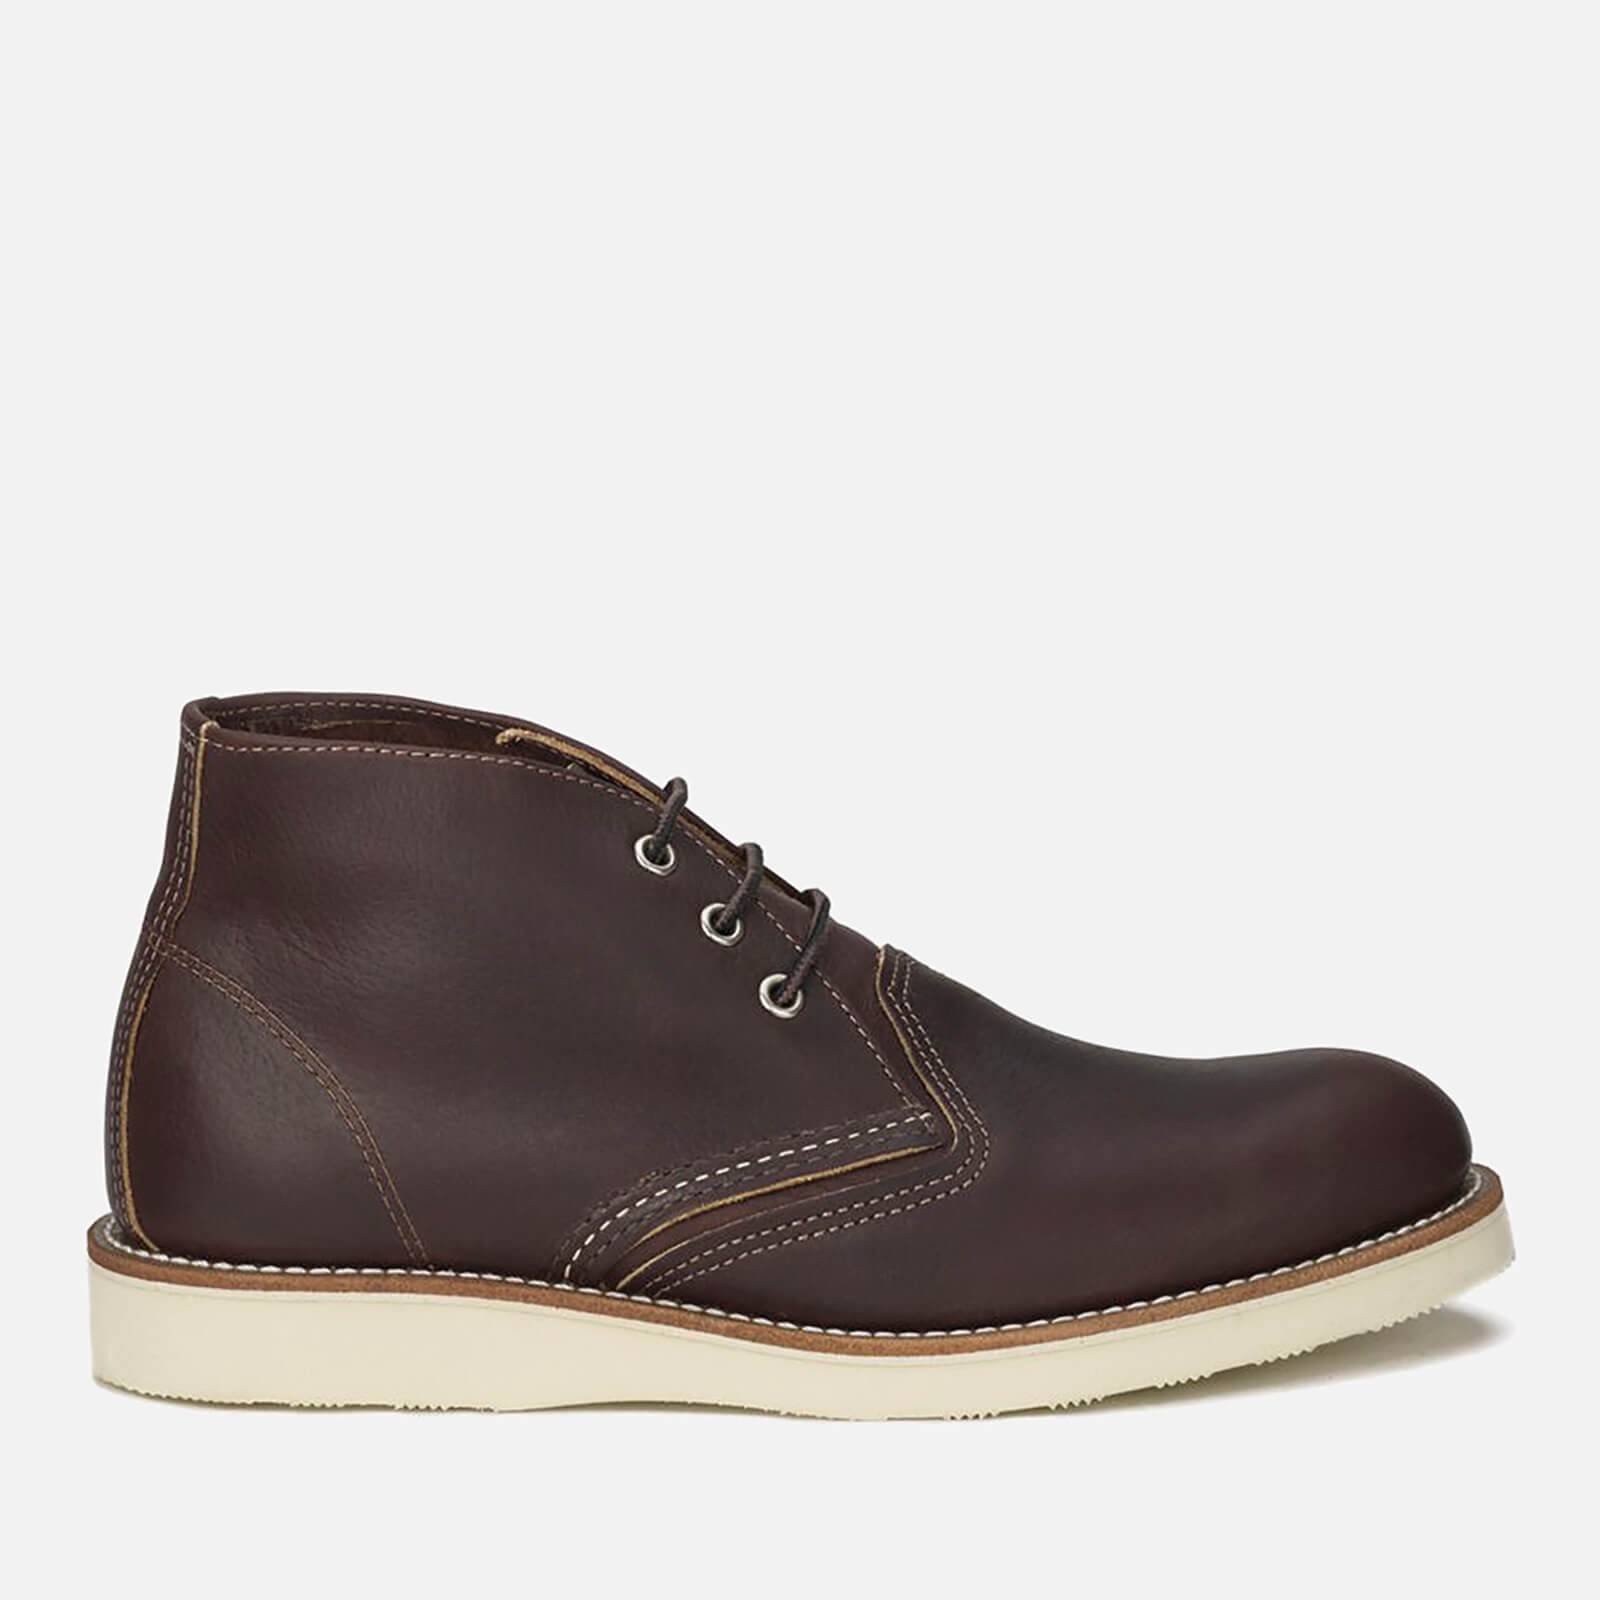 Red Wing Men's Chukka Leather Boots - Briar Oil Slick - UK 10/US 11 - Brown